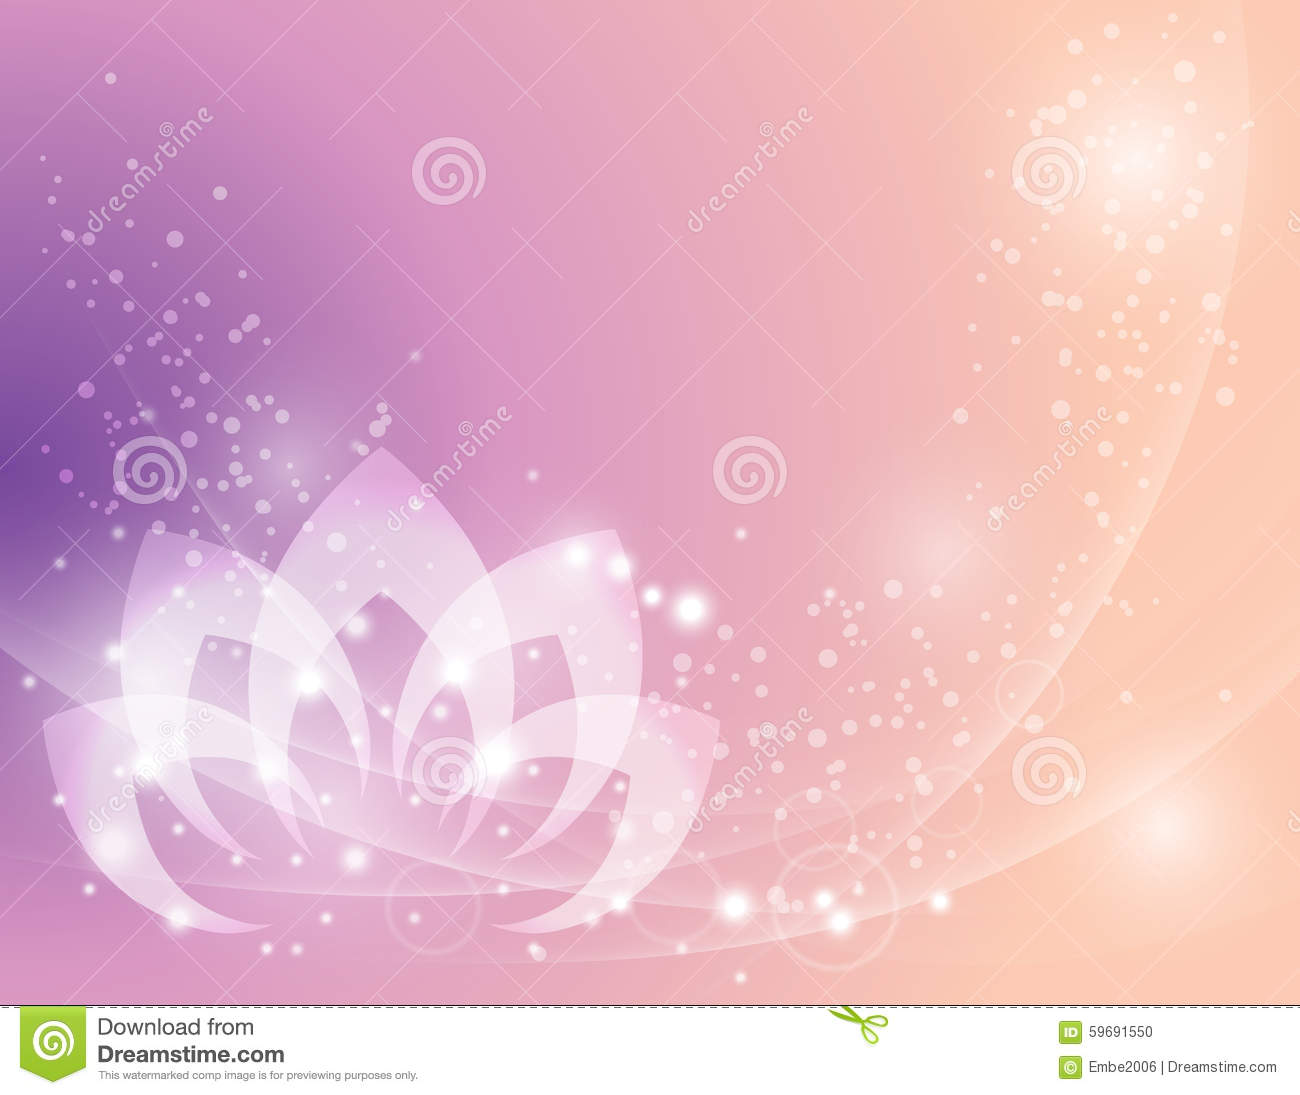 Calm Lotus Flower Background Stock Vector Illustration Of Nature